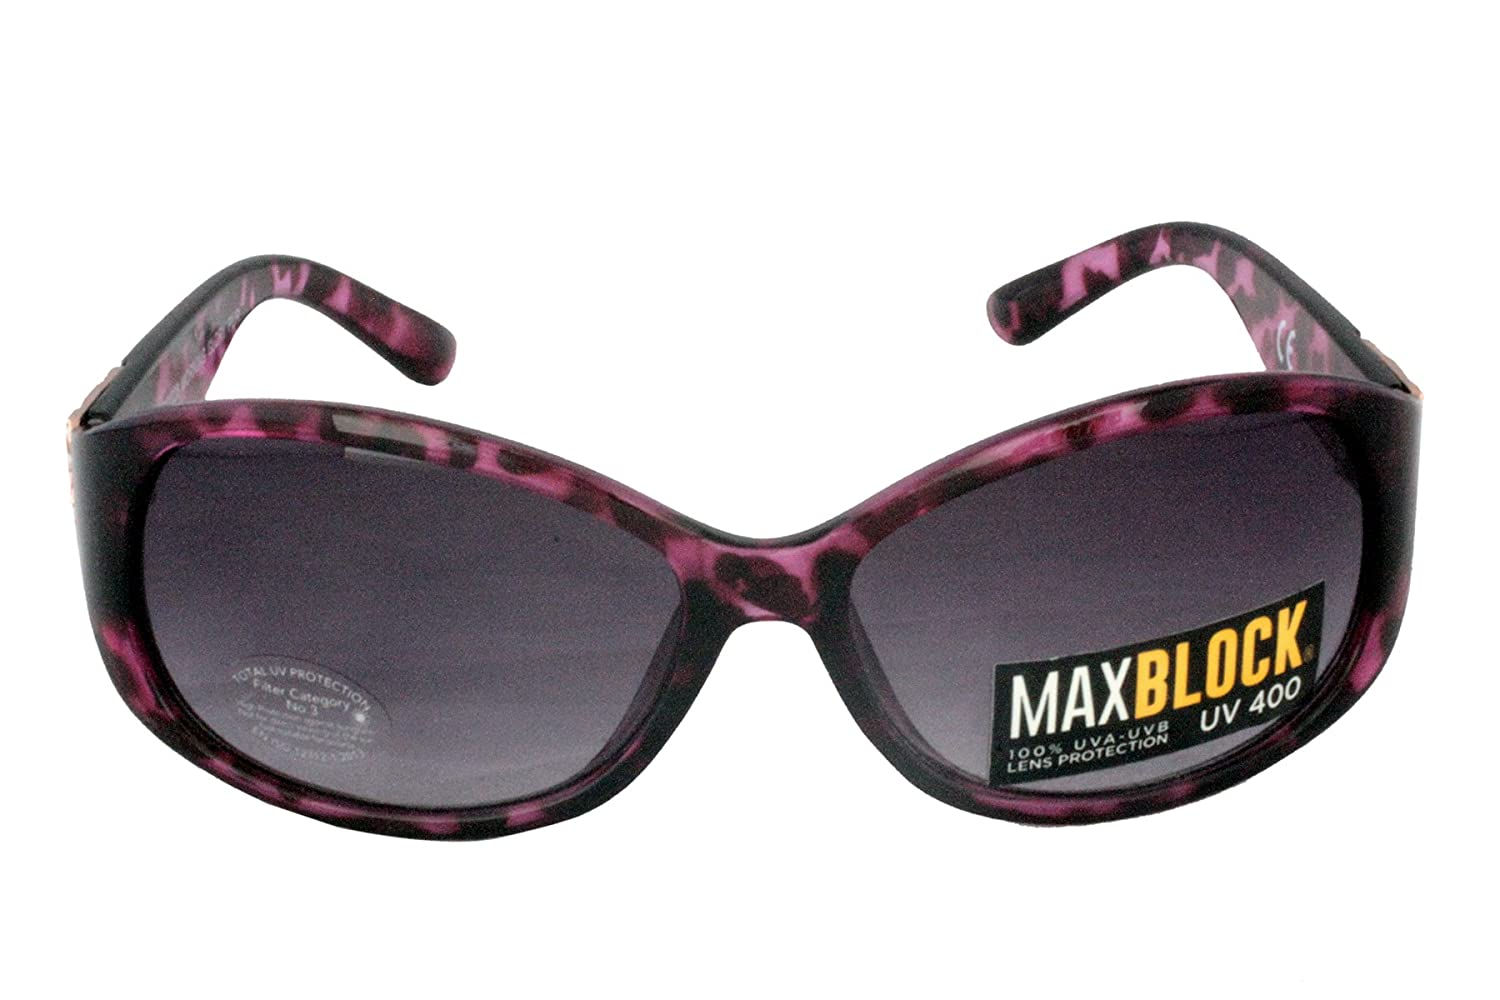 806926e880c Foster Grant FG20 Women's Rounded Rectangular Style Sunglasses Purple Black  Tortoise Shell Frame & Arms with Floral Metal Pattern Edged on Arms Black  ...